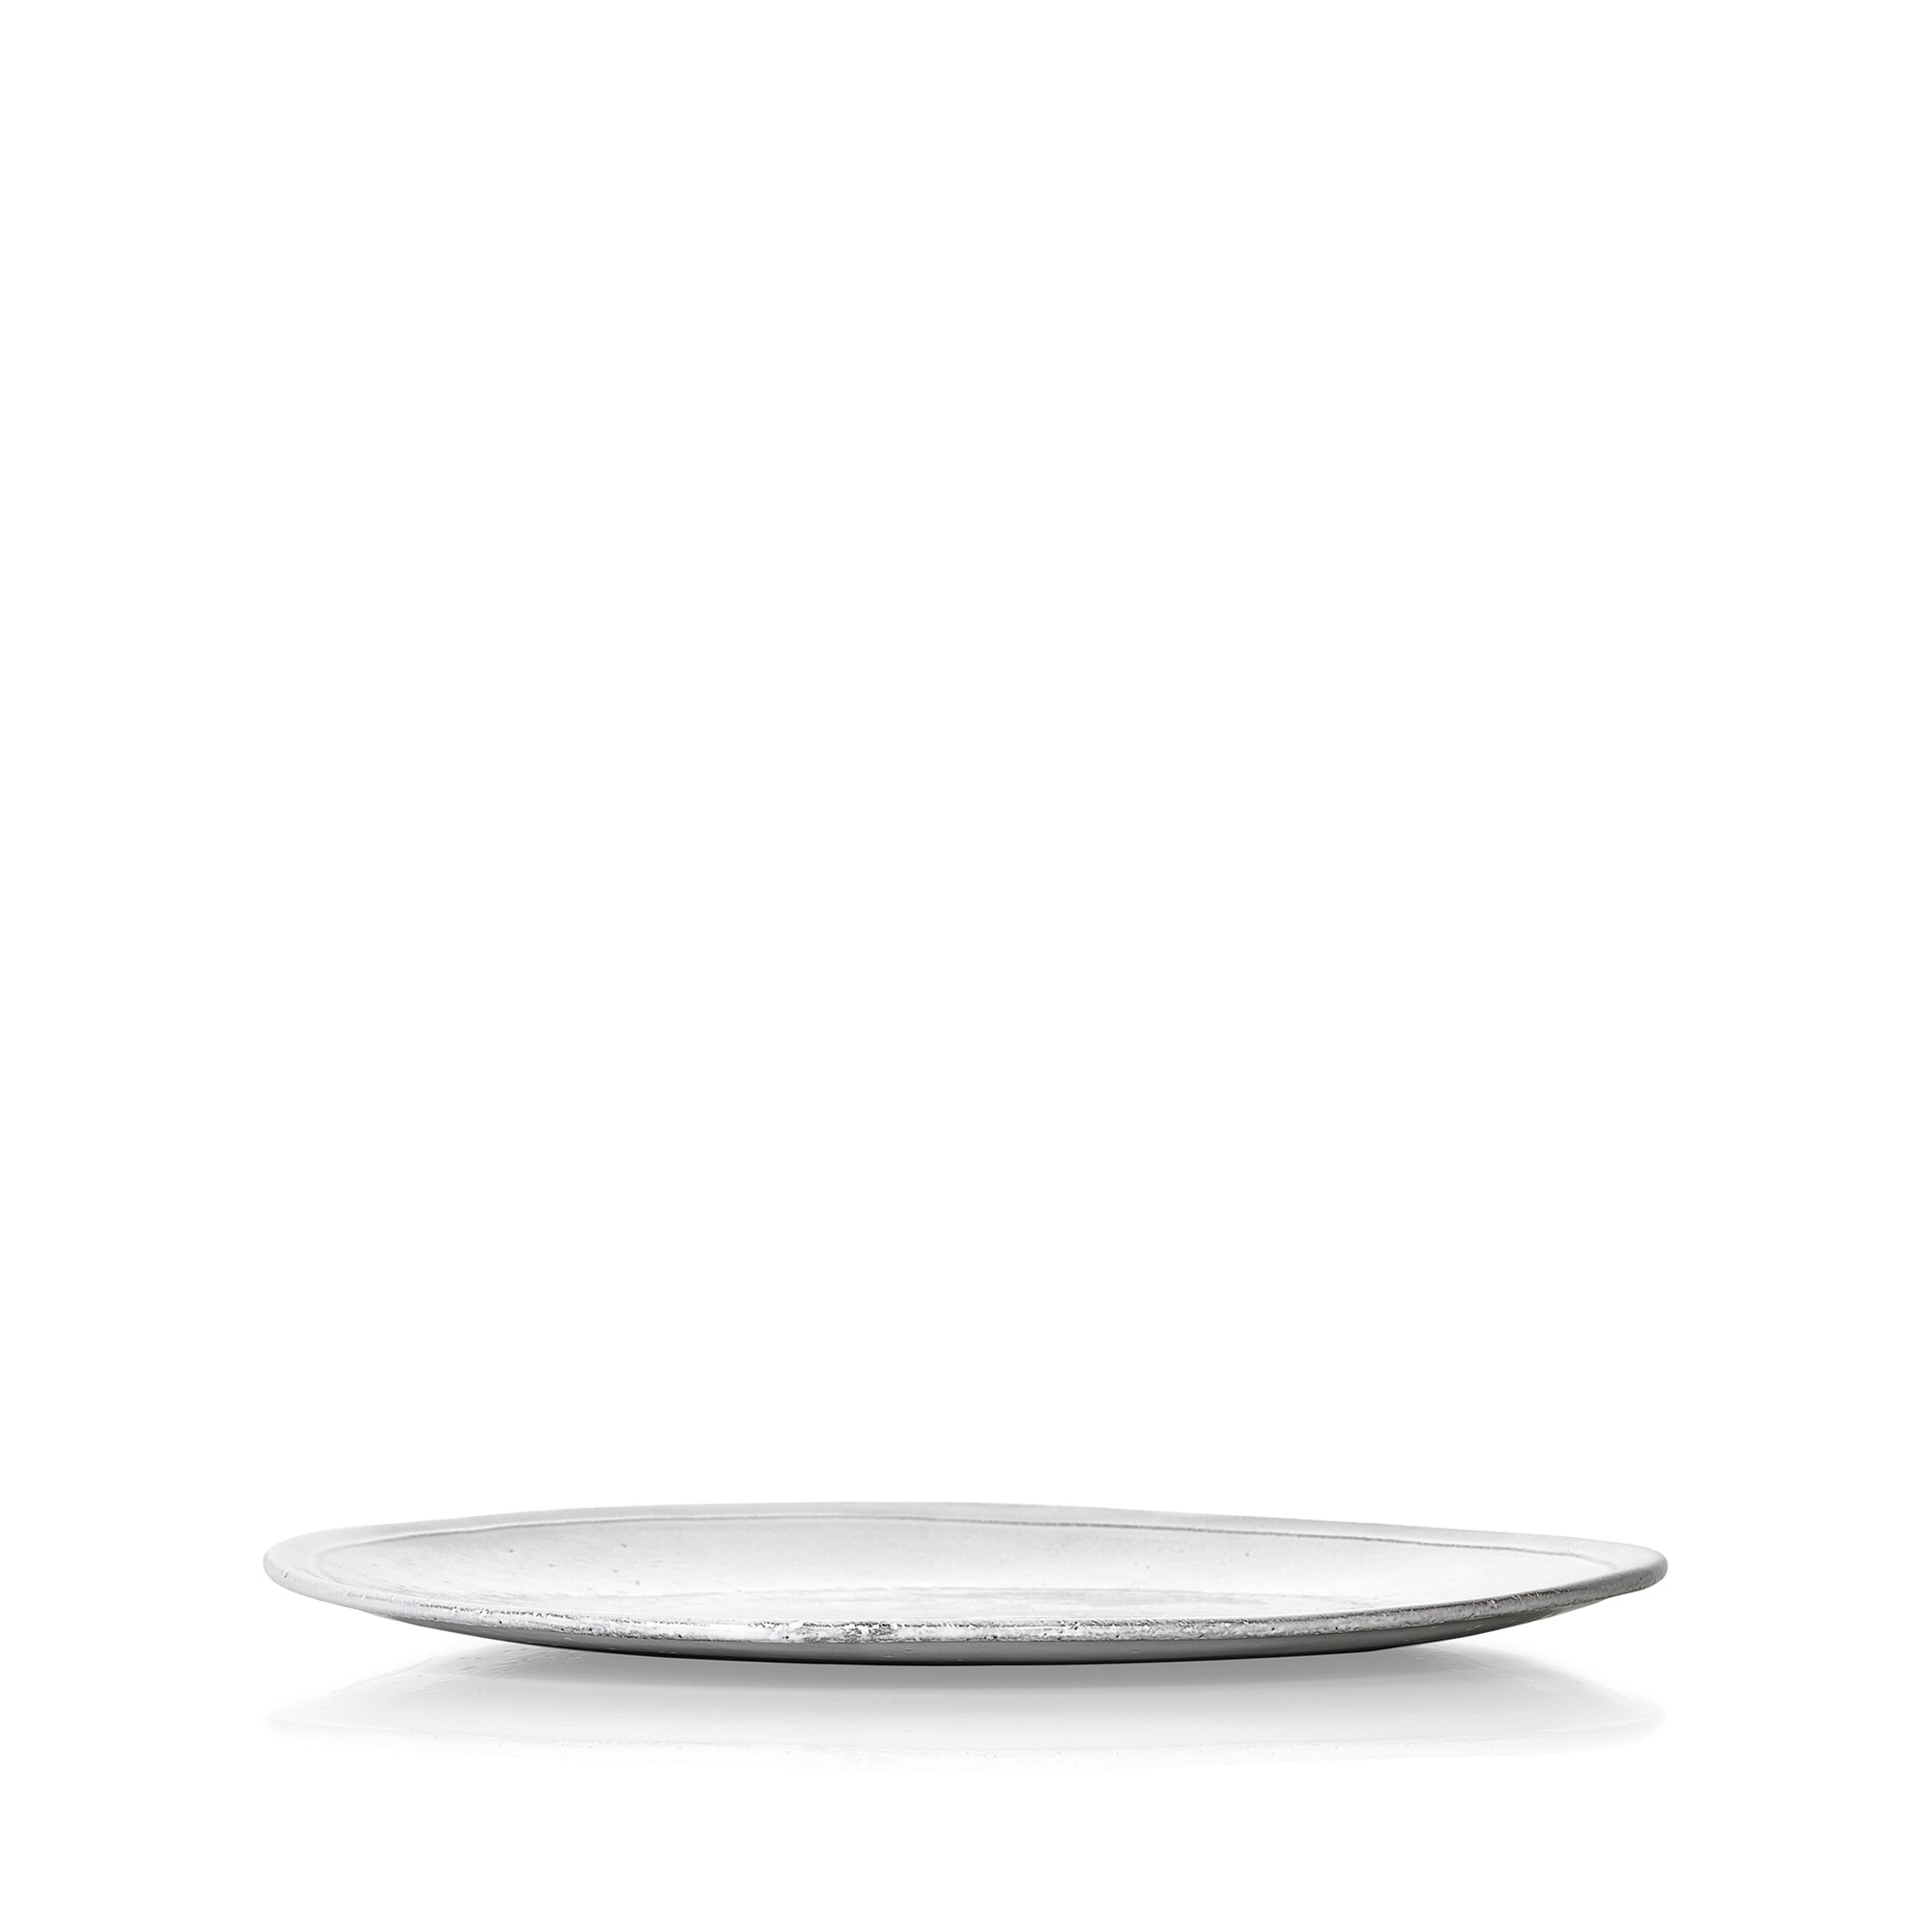 Simple Dinner Plate by Astier de Villatte